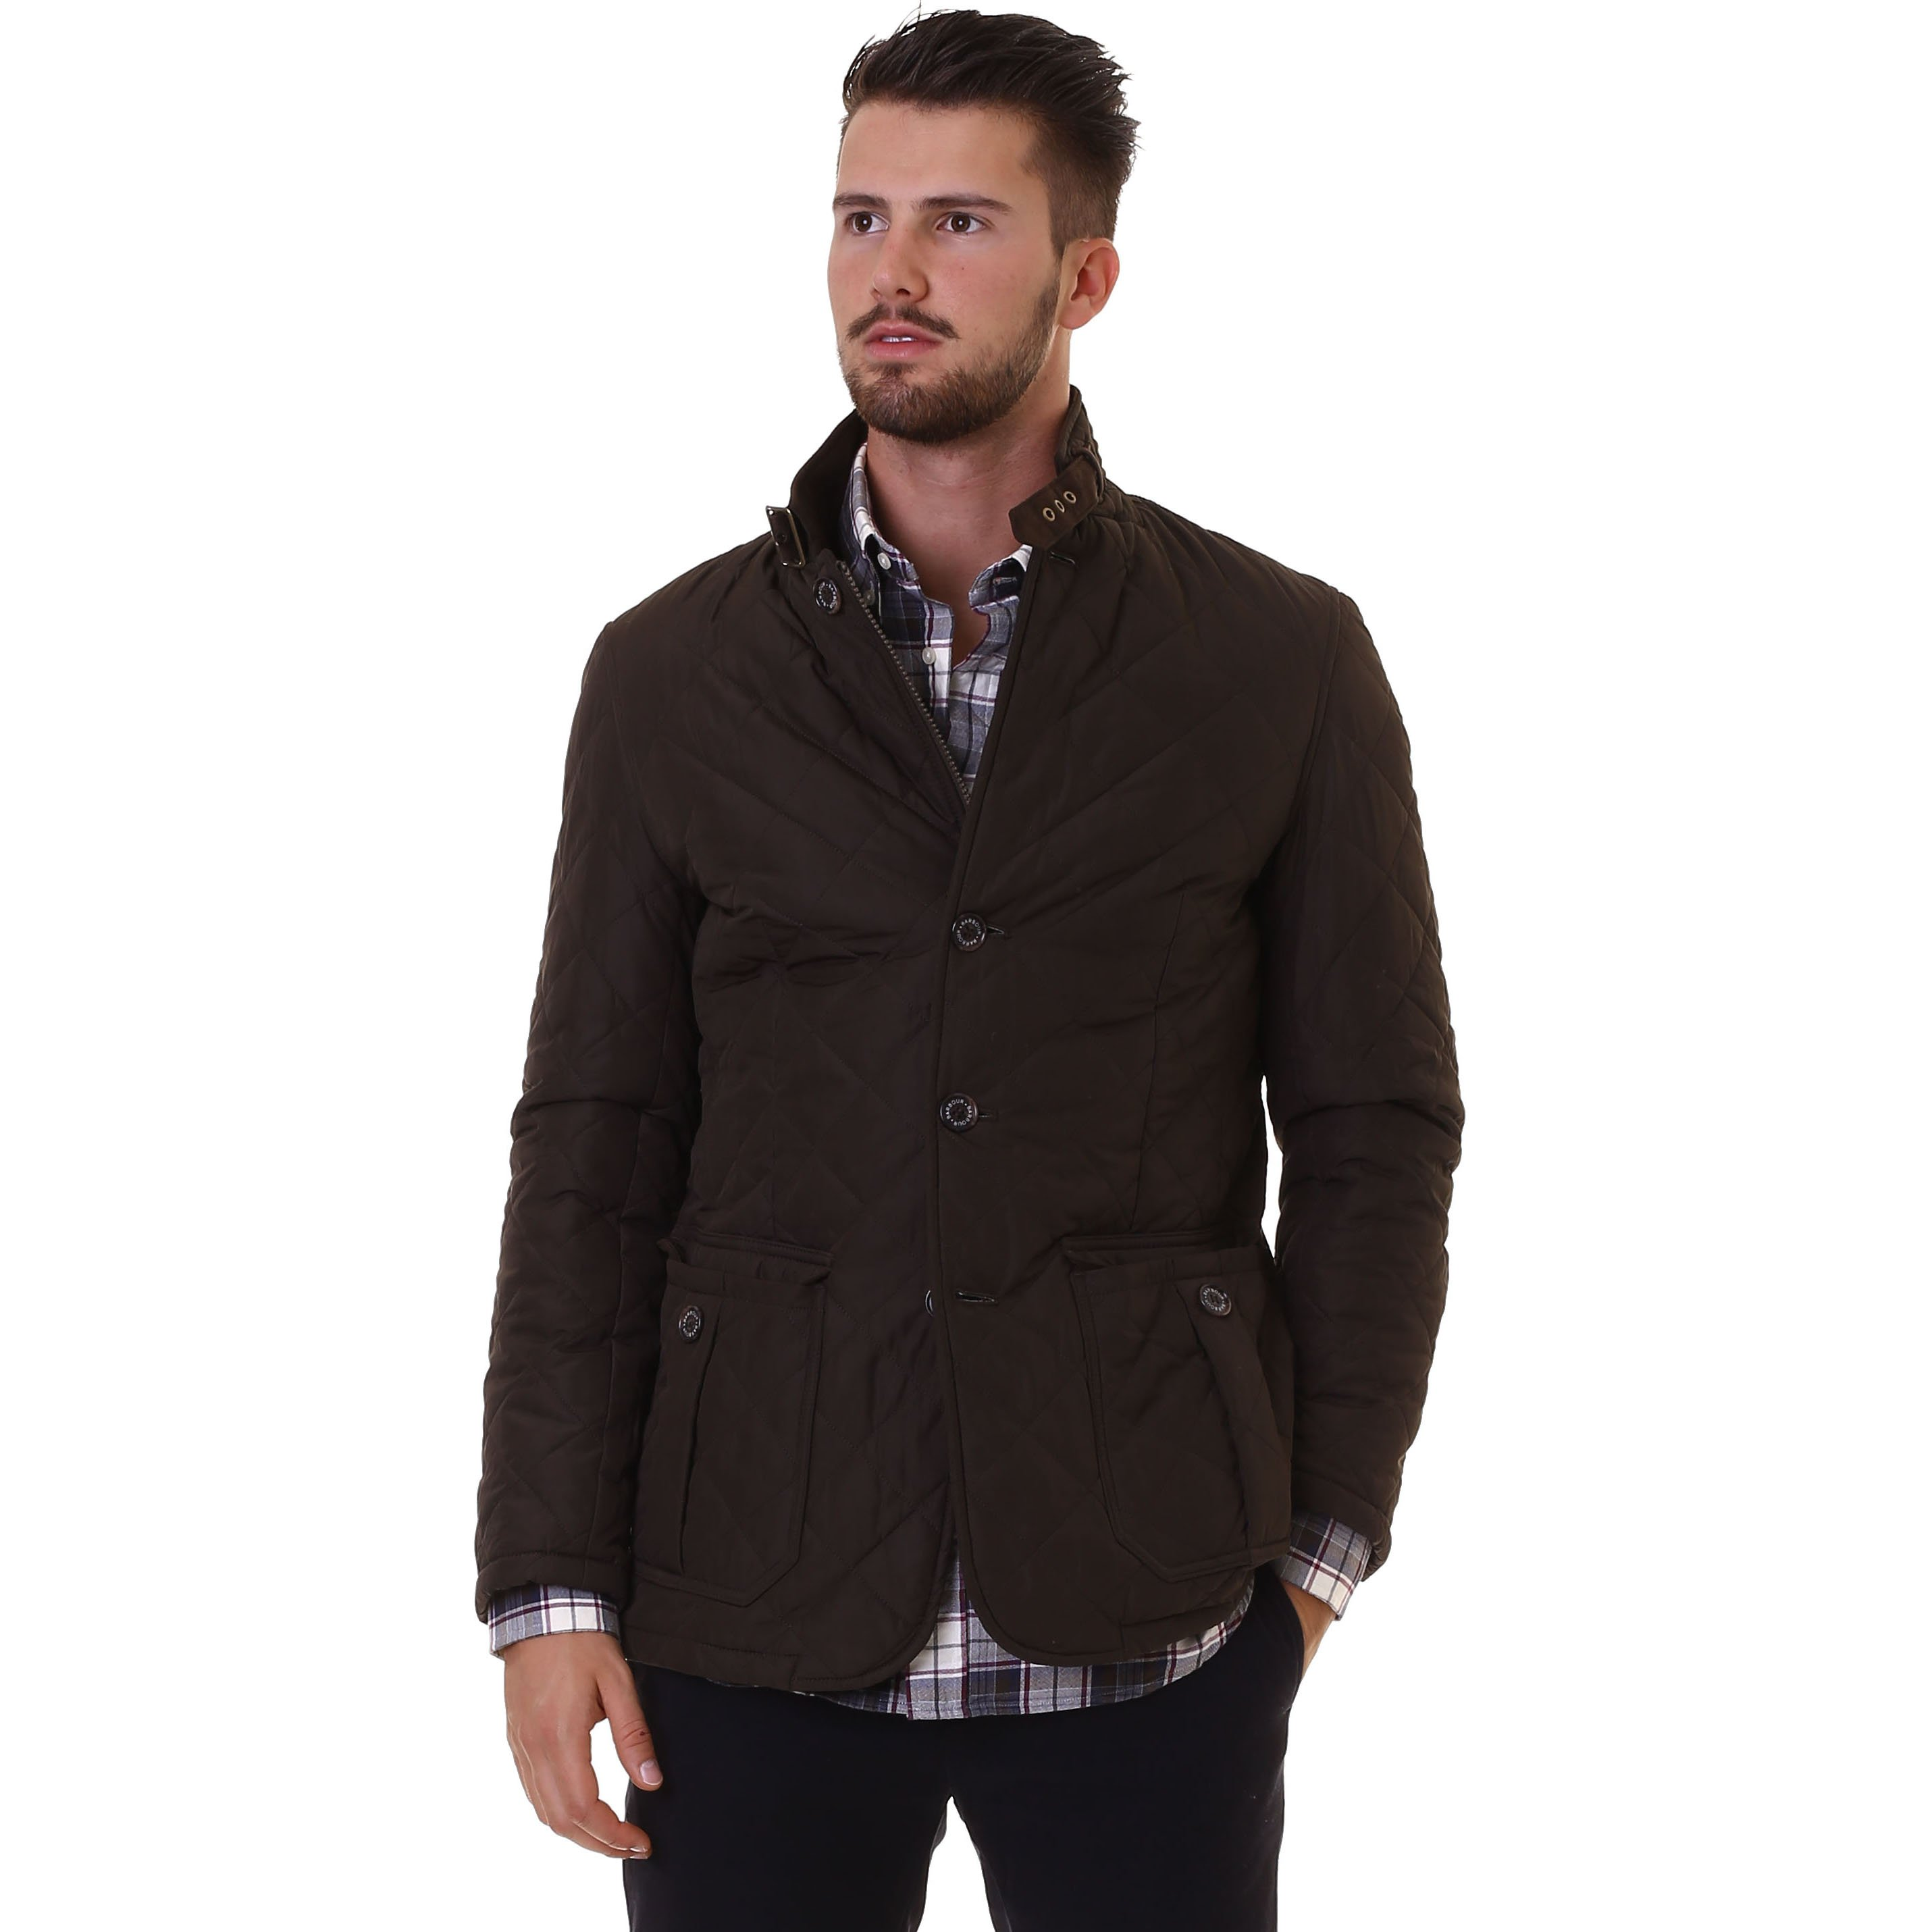 Barbour Quilted Lutz Jacket Ol51 | Nencini Sport : barbour quilted lutz jacket - Adamdwight.com